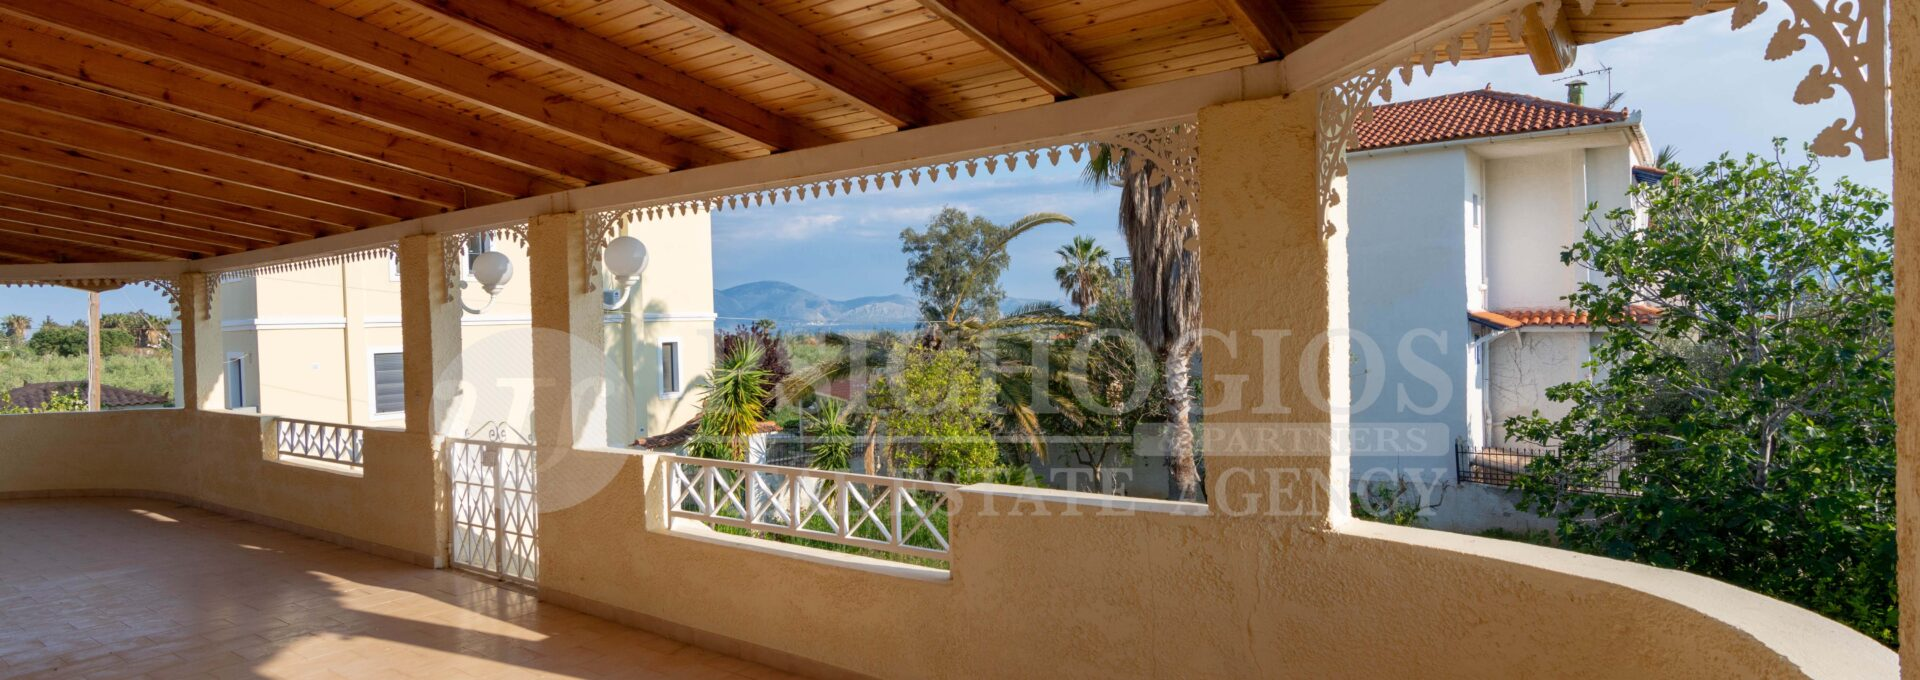 for_sale_house_380_square_meters_sea_view_ermioni_greece (23)